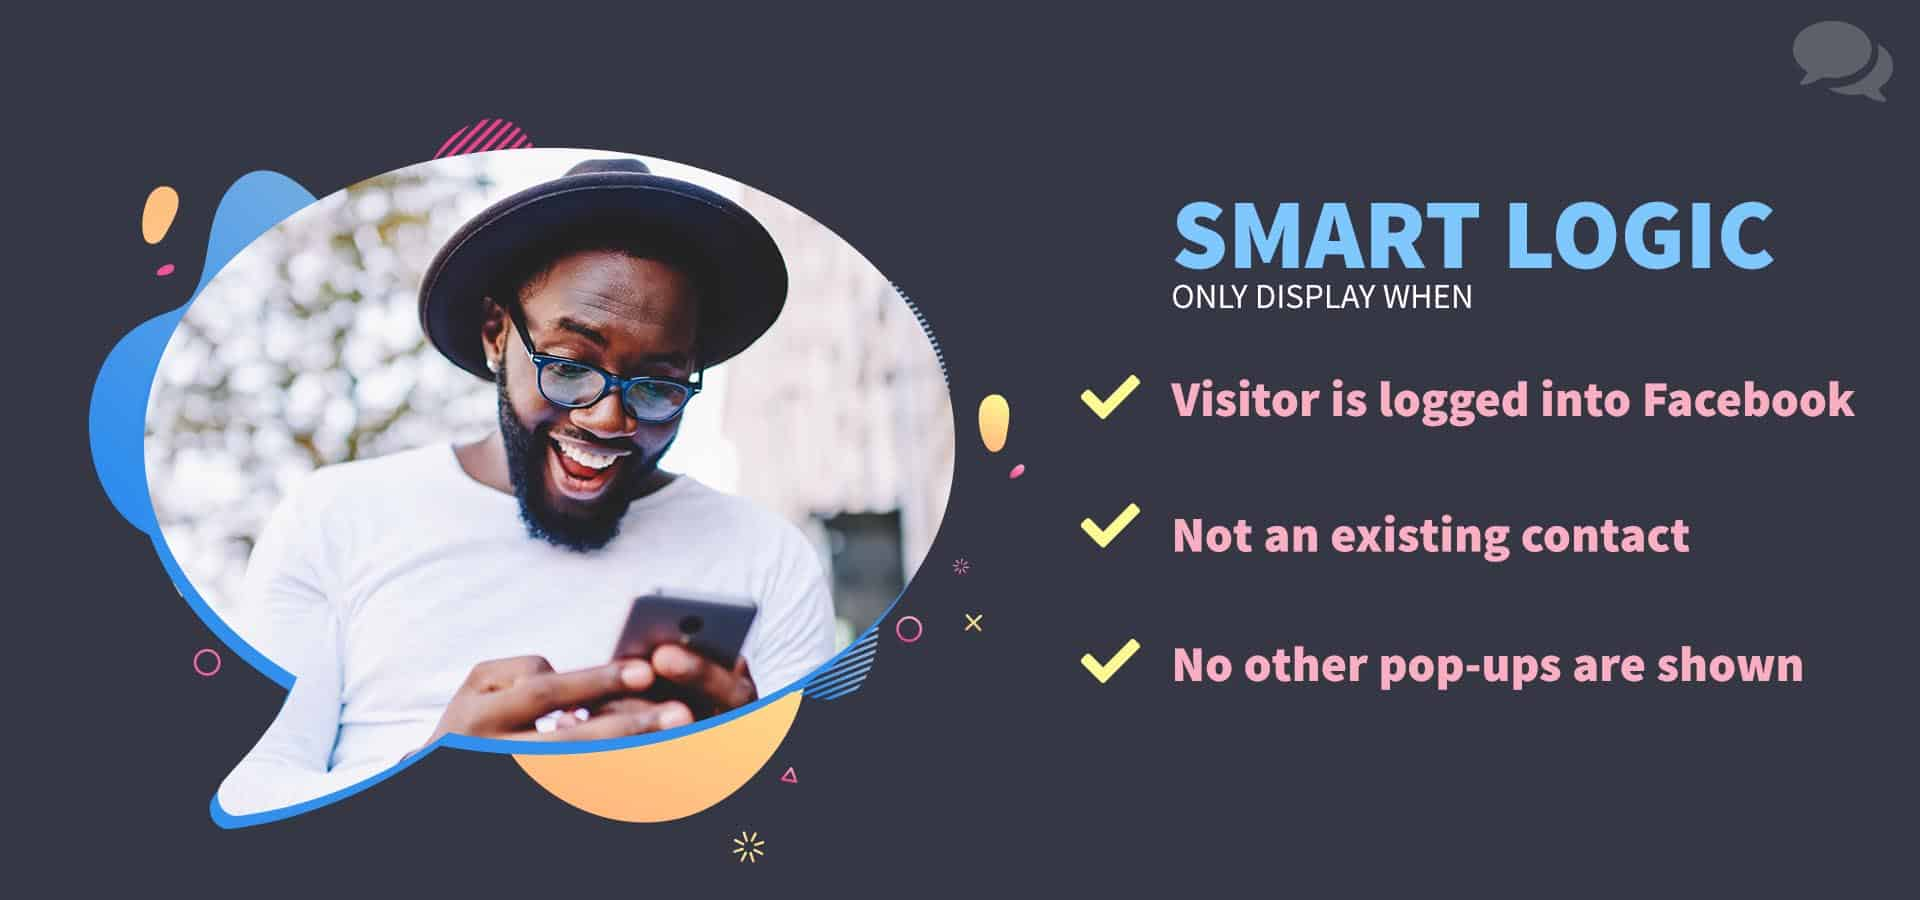 ShopMessage smart logic only targets visitors that are: 1. logged into Facebook, 2. Not on an existing contact yet and 3. Not at the same time as an existing modal on the site. A guy with glasses and a hat smiles widely at his phone.